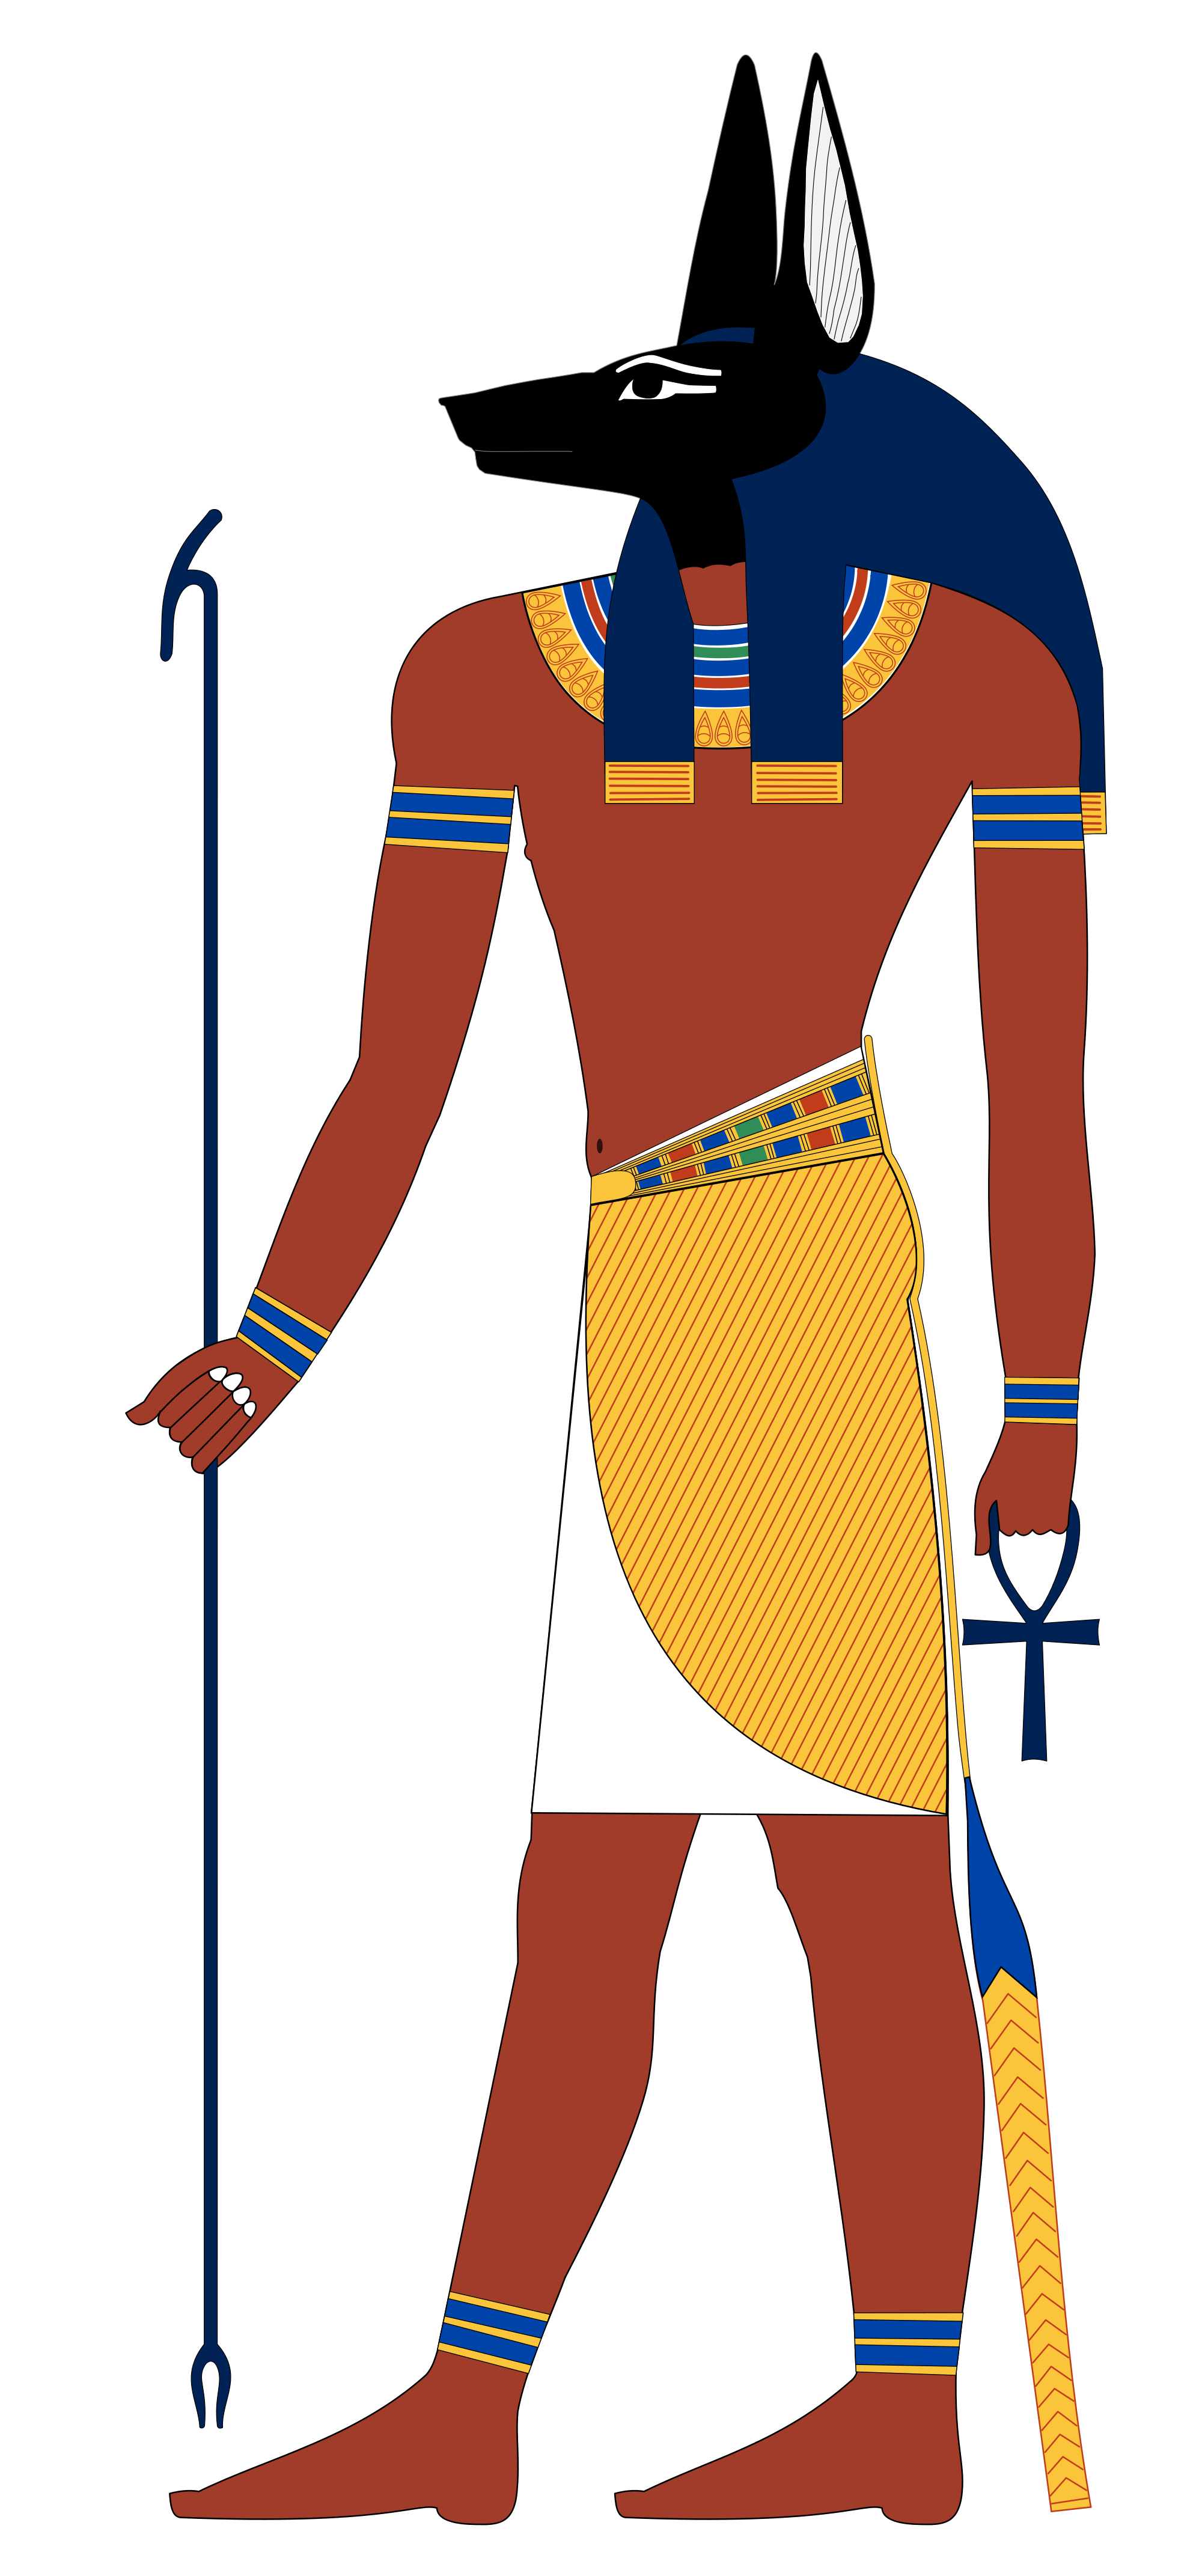 Wiccan cat clipart png library My Wicca Journey: Anubis (jackal headed god of the dead) Wicca ... png library